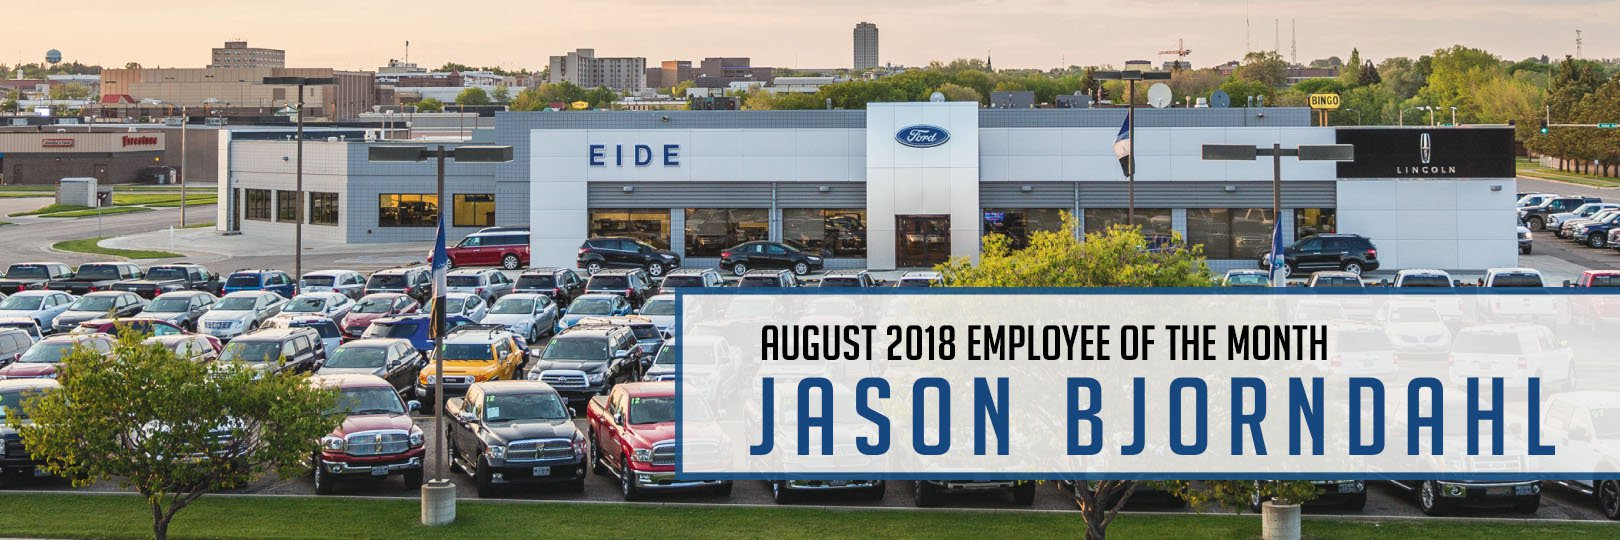 Jason Bjorndahl Employee of the Month Eide Ford